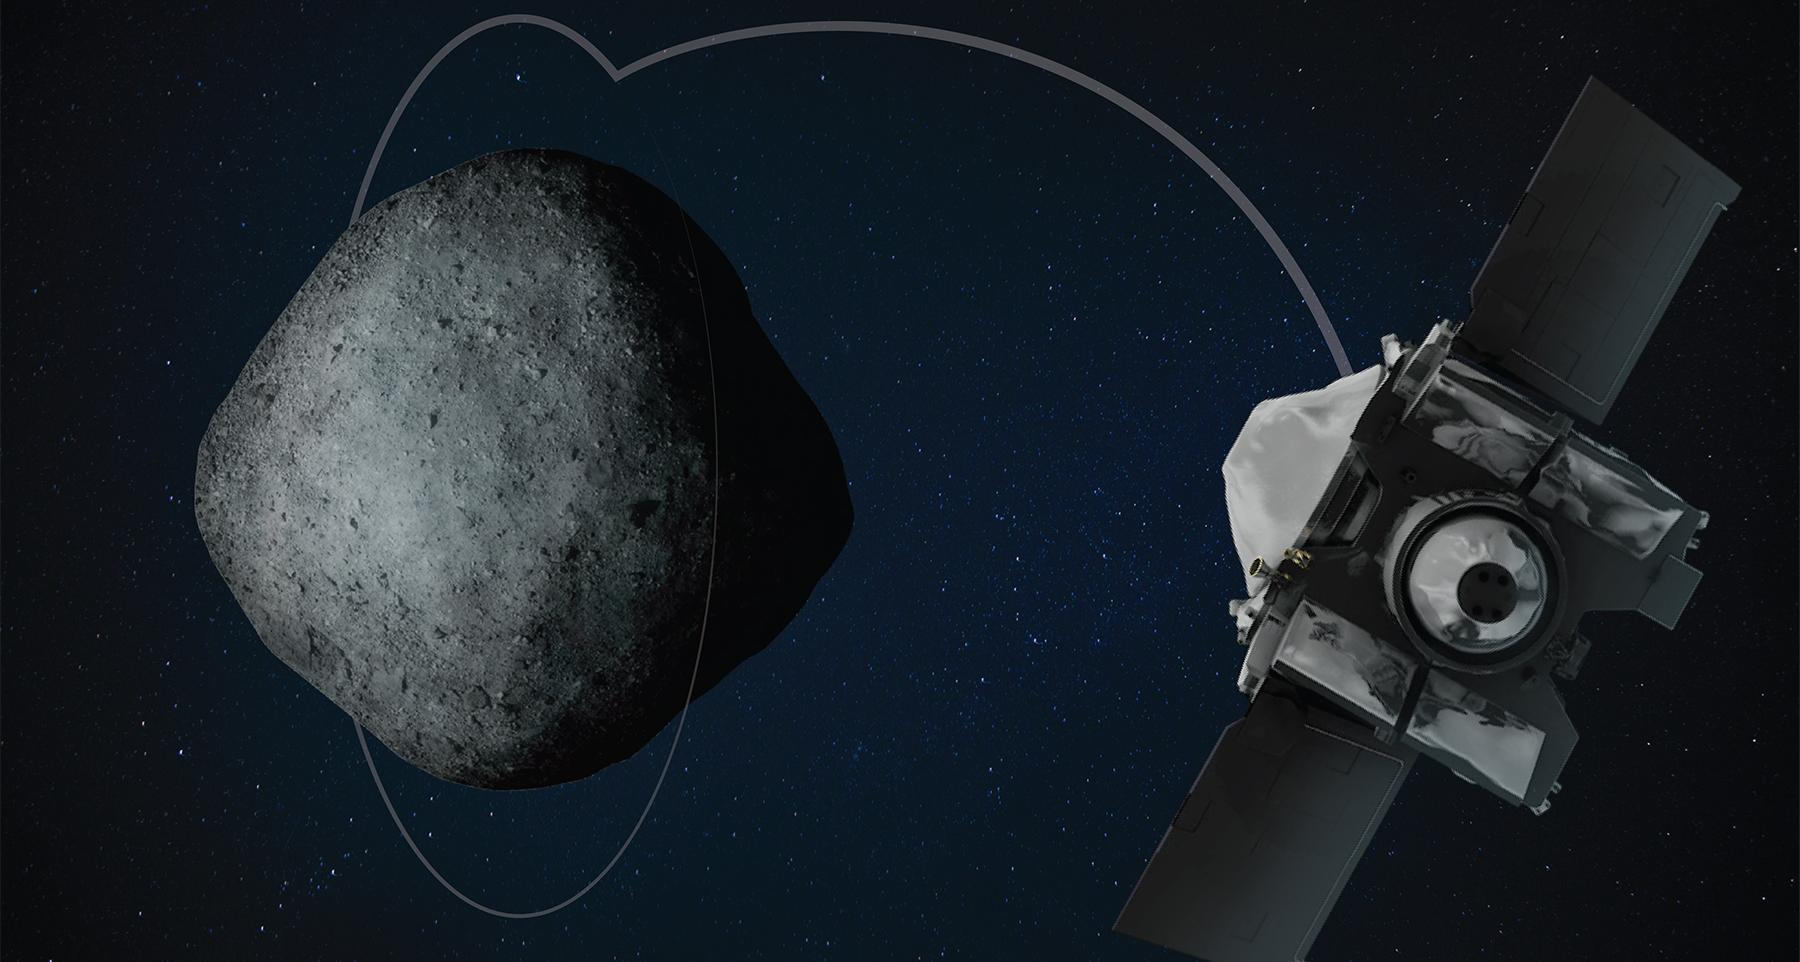 OSIRIS-REx at Bennu (Image: Heather Roper/University of Arizona)